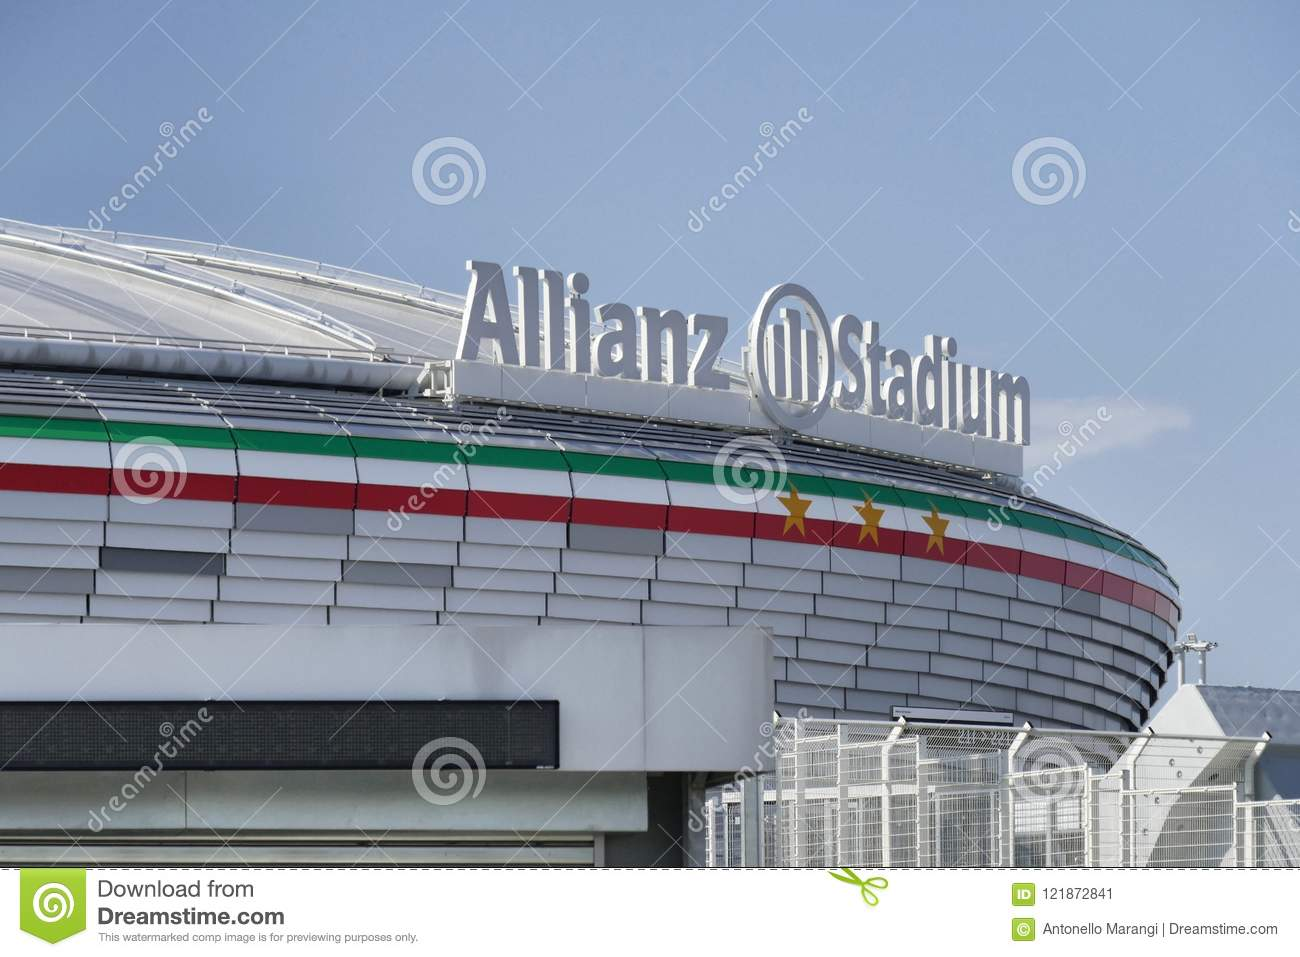 juventus fc stadium sponsored by allianz editorial photo image of outdoors cheering 121872841 https www dreamstime com juventus fc stadium sponsored allianz juventus fc stadium sponsored allianz insurance turin italy july image121872841